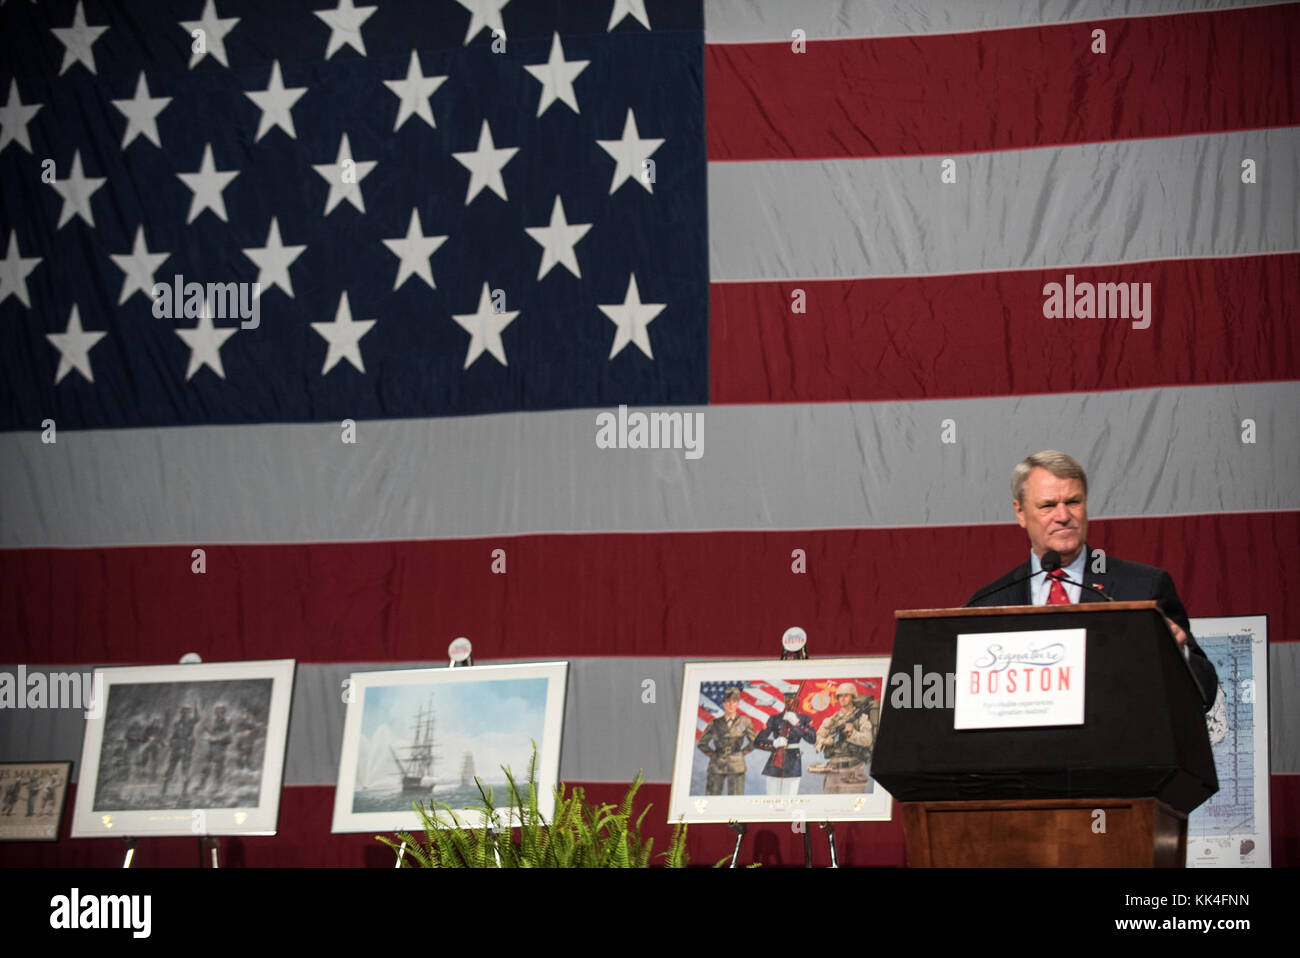 Mr. Tom Lyons, Founder and chairman of the Semper Fi Society, speaks during the Semper Fidelis Society Boston U.S. Marine Corps Birthday Luncheon at the Boston Convention & Exhibition Center, Massachusetts, Nov. 13, 2017. (DoD Photo by U.S. Army Sgt. James K. McCann) Stock Photo